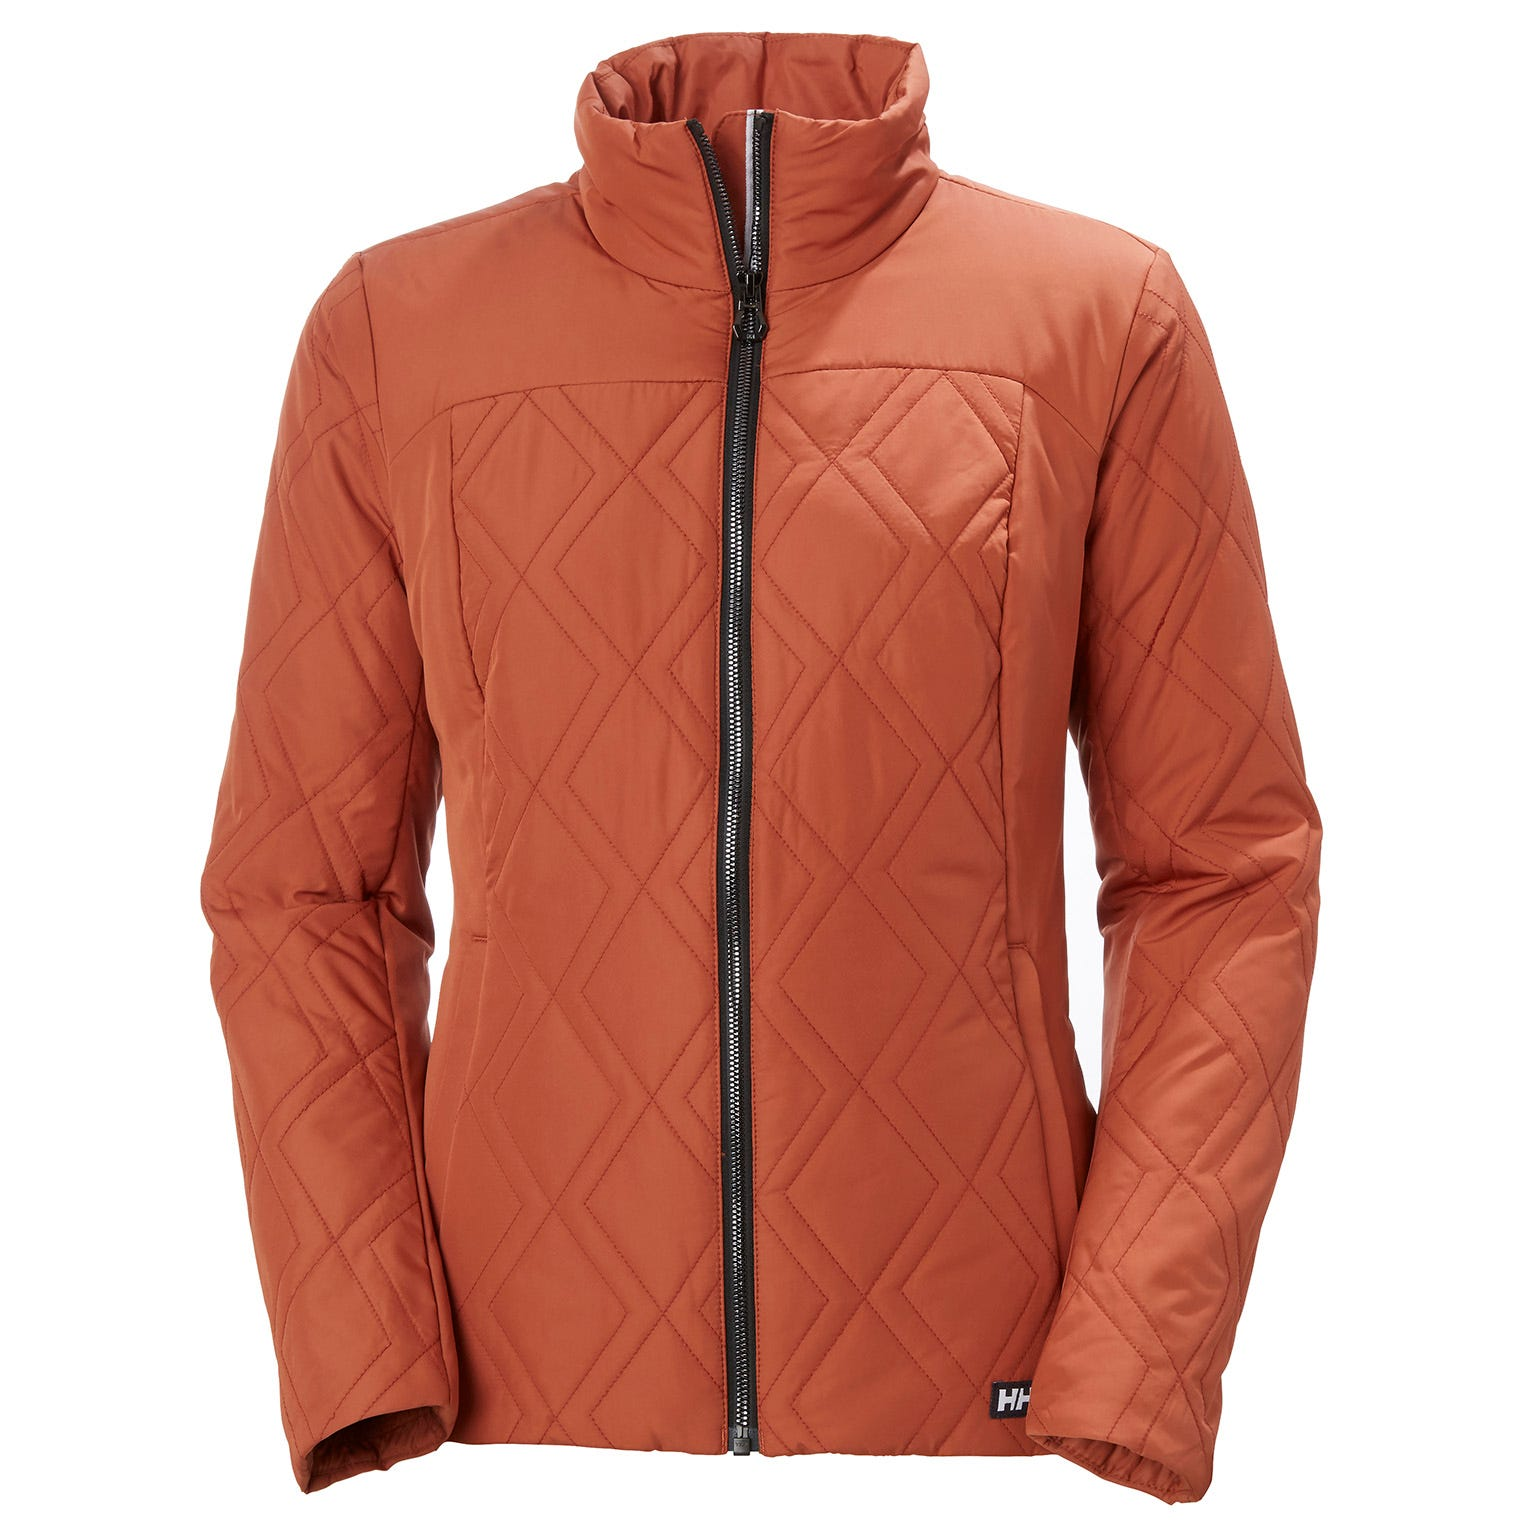 Helly Hansen Womens Crew Insulator Sailing Jacket L